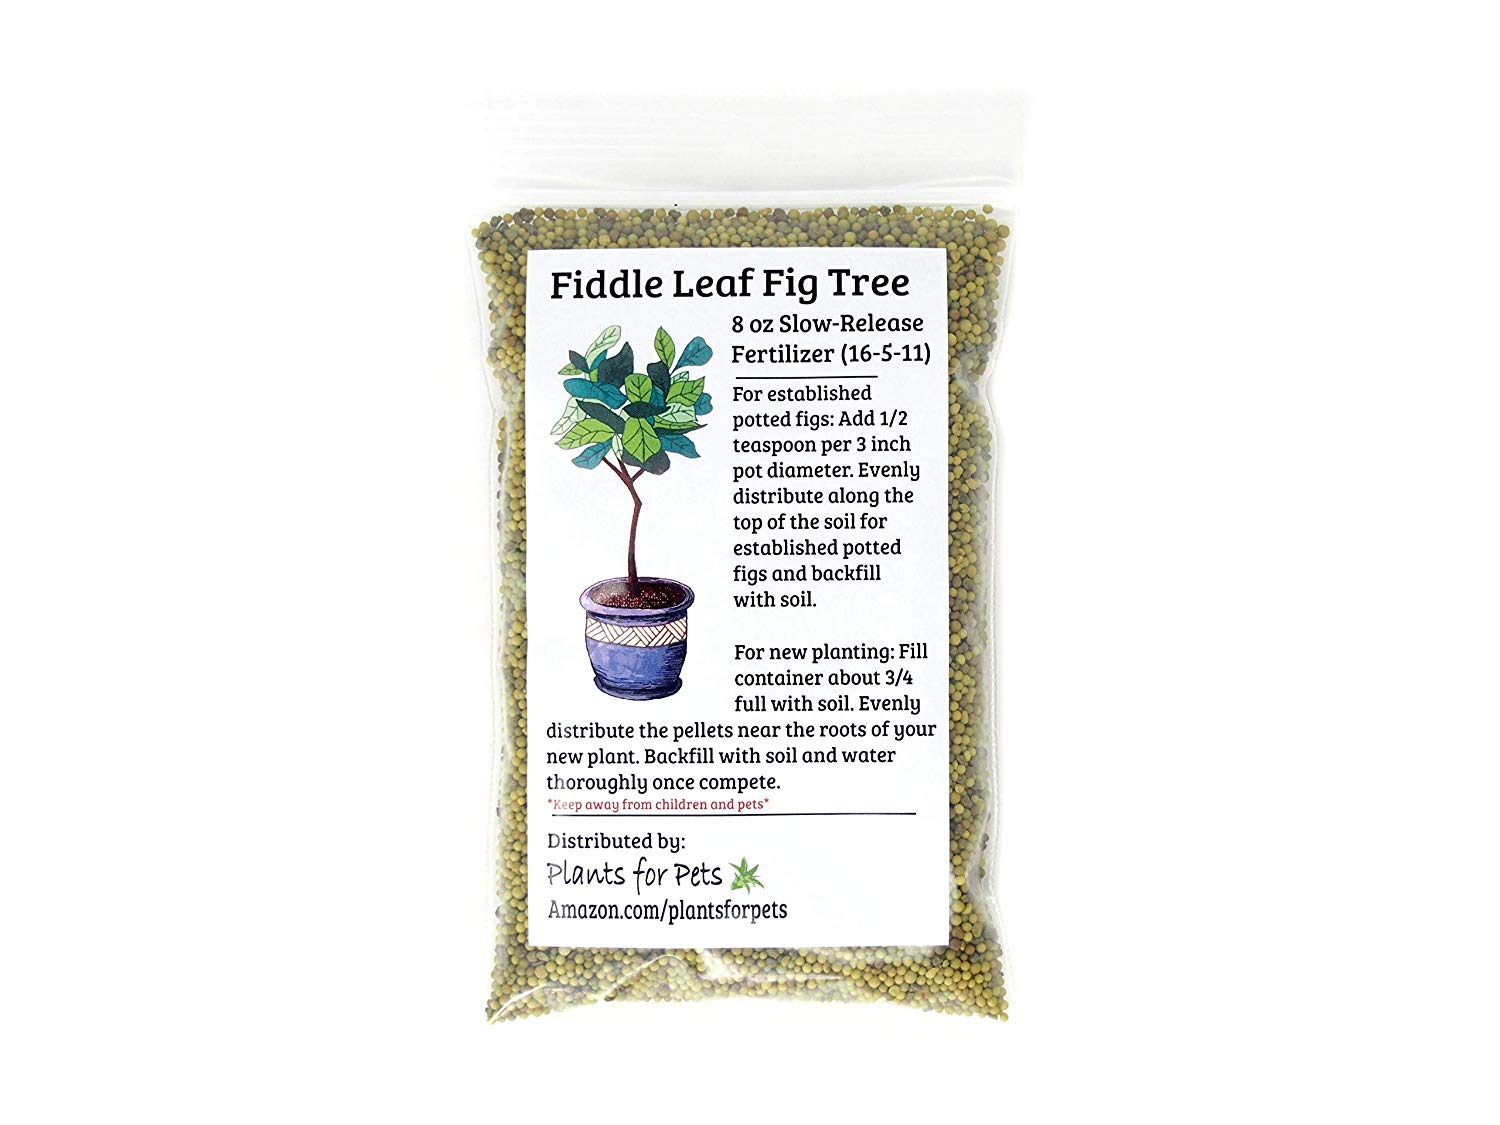 Fiddle Leaf Fig Tree Fertilizer (slow-release Pellets) Ficus Plant Food | Improves Leaves/branches | Potted Indoor Trees Treatment (upc 810024700172)